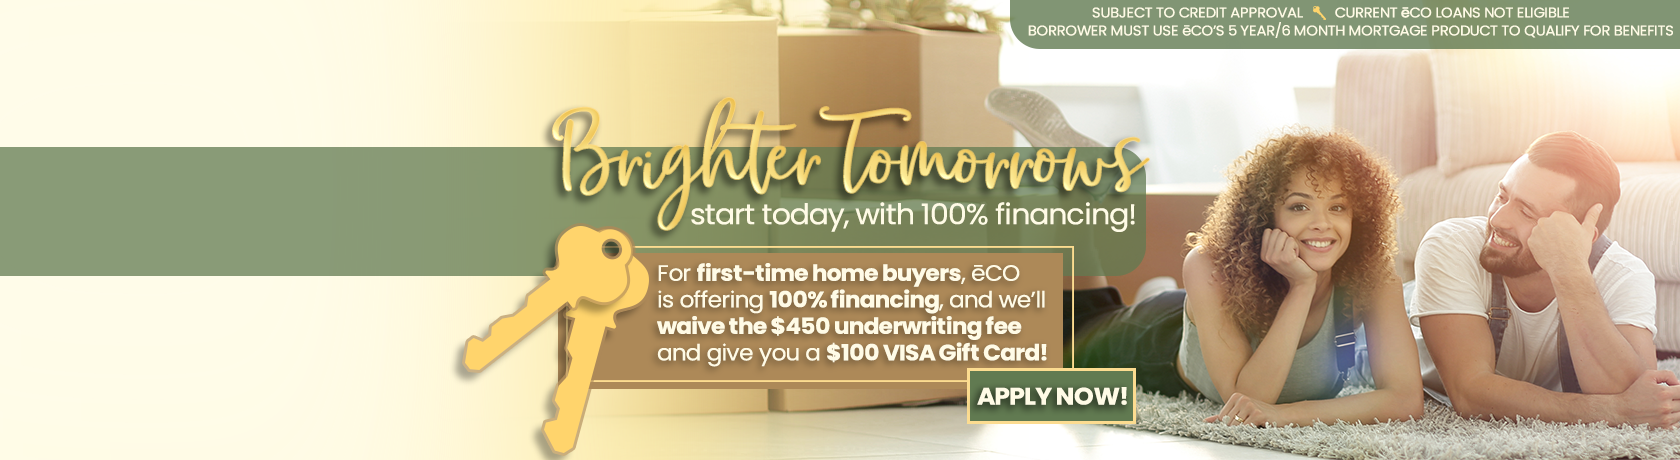 Brighter Tomorrows start today, with 100% financing. For First-time home buyers, eCO is offering 100% financing, and we'll waive the $450 underwriting fee and give you a $100 VISA Gift Card. Apply Now.